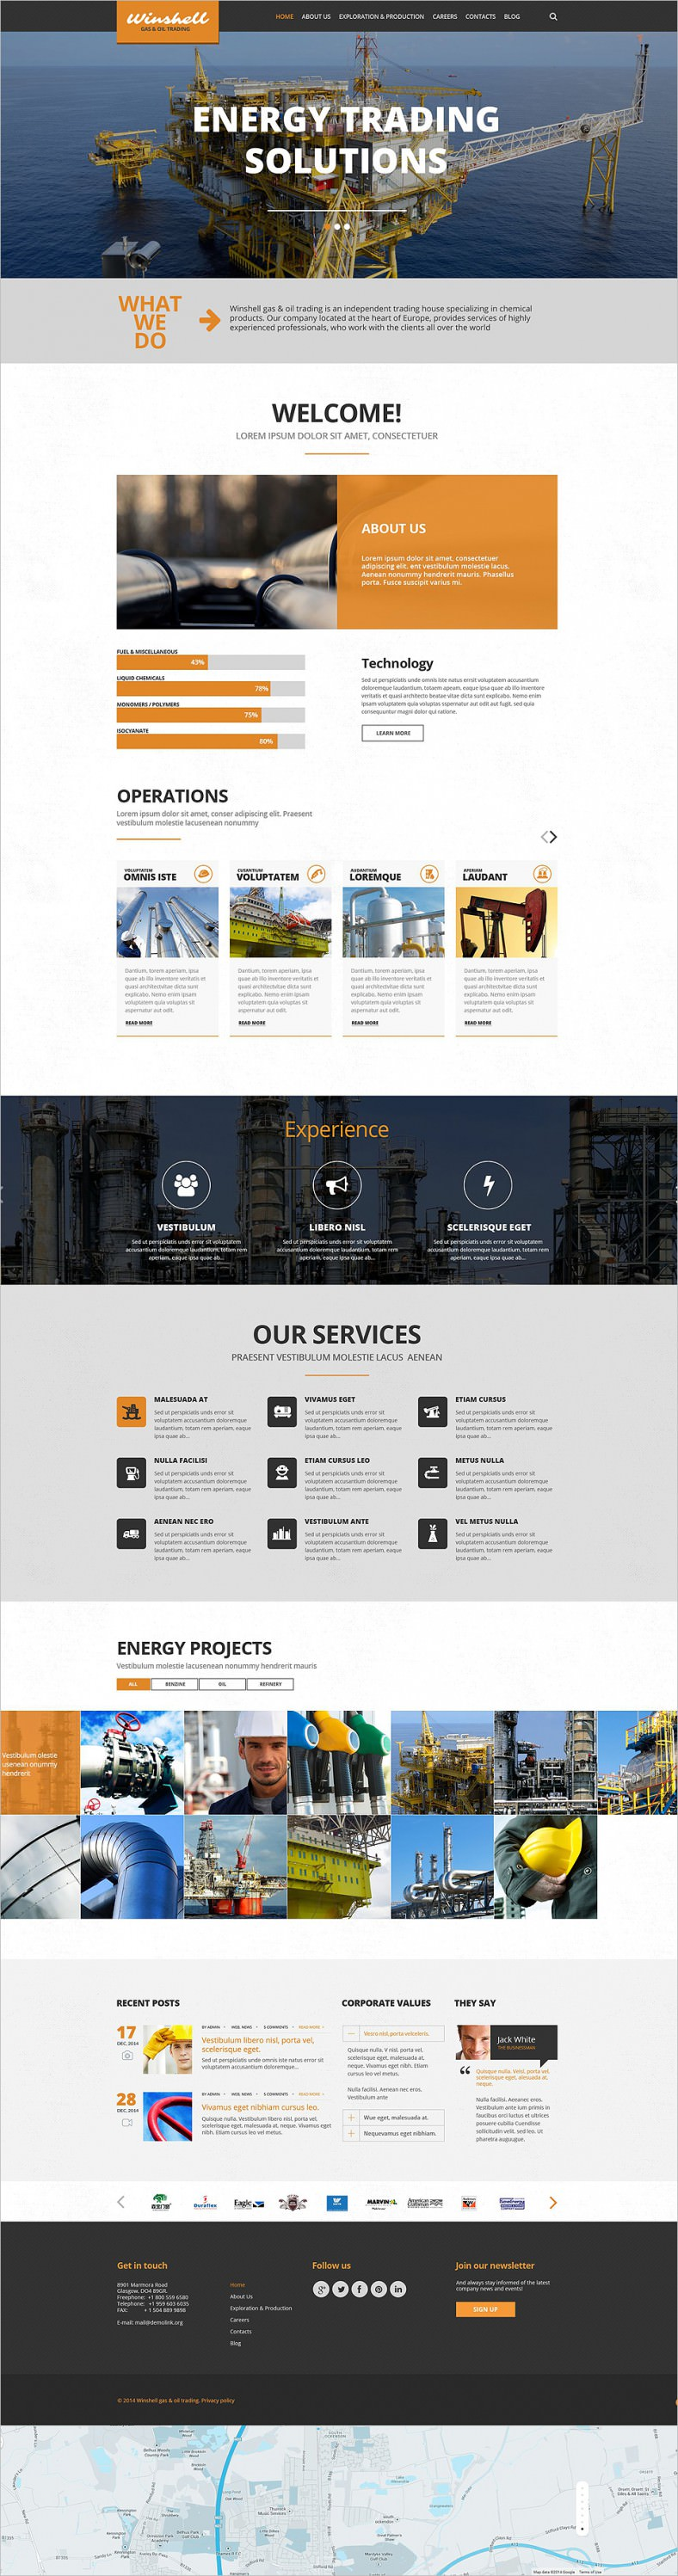 Parallax Scrolling Website Templates Free Download